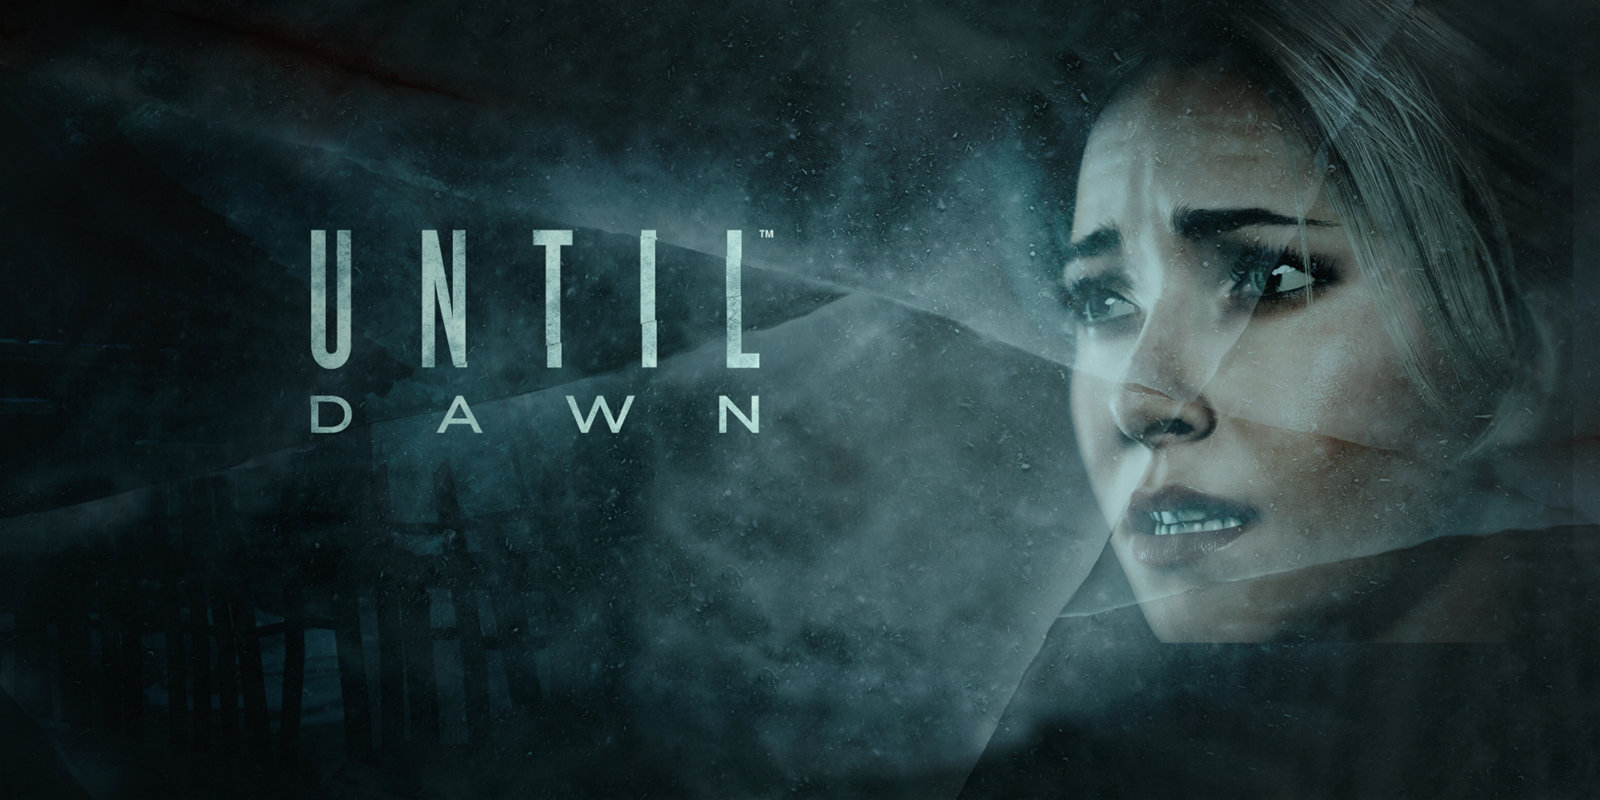 Until Dawn trailer